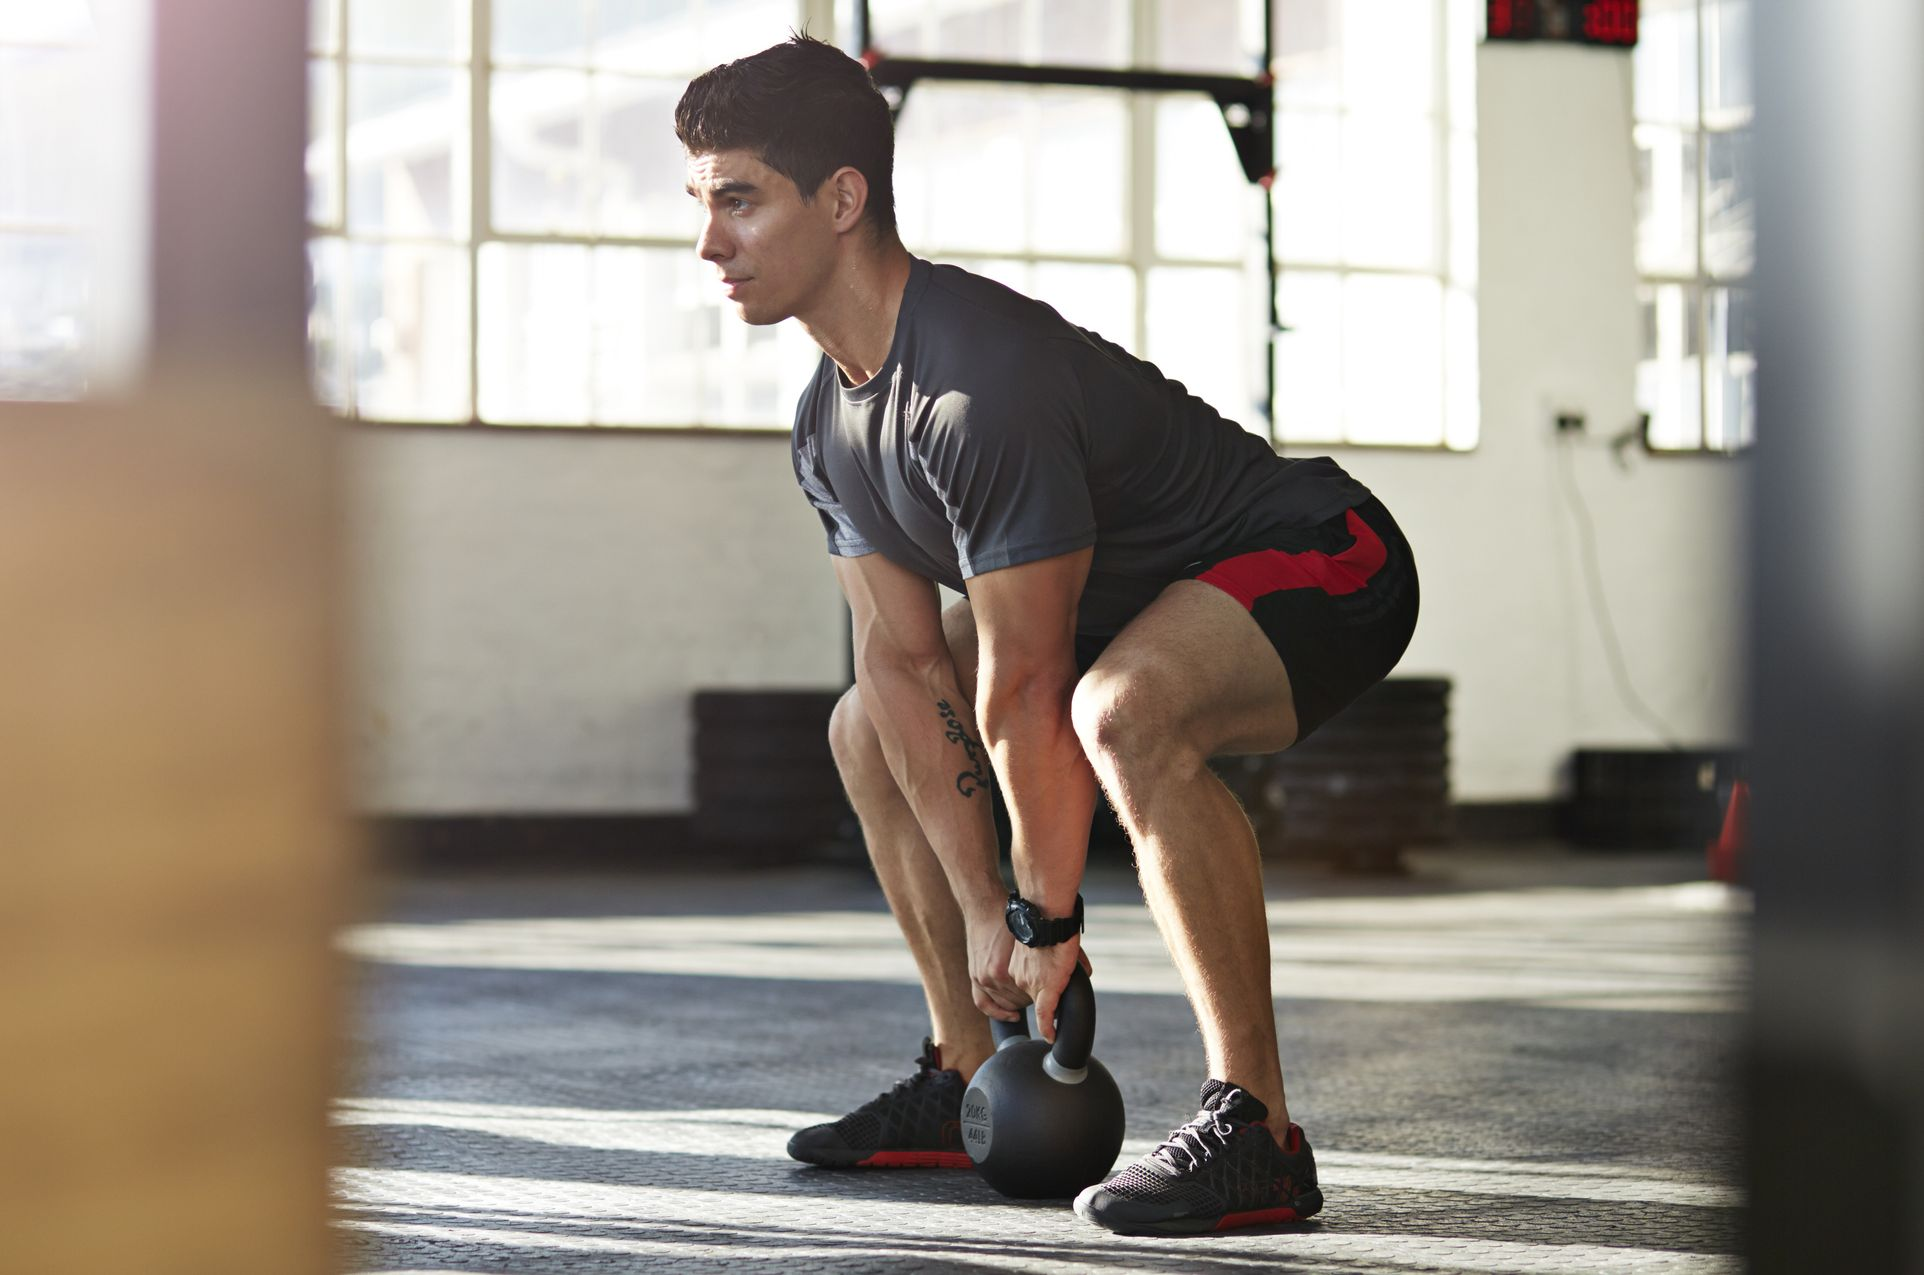 These 8 Kettlebell Exercises Will Boost Your Leg and Lung Power